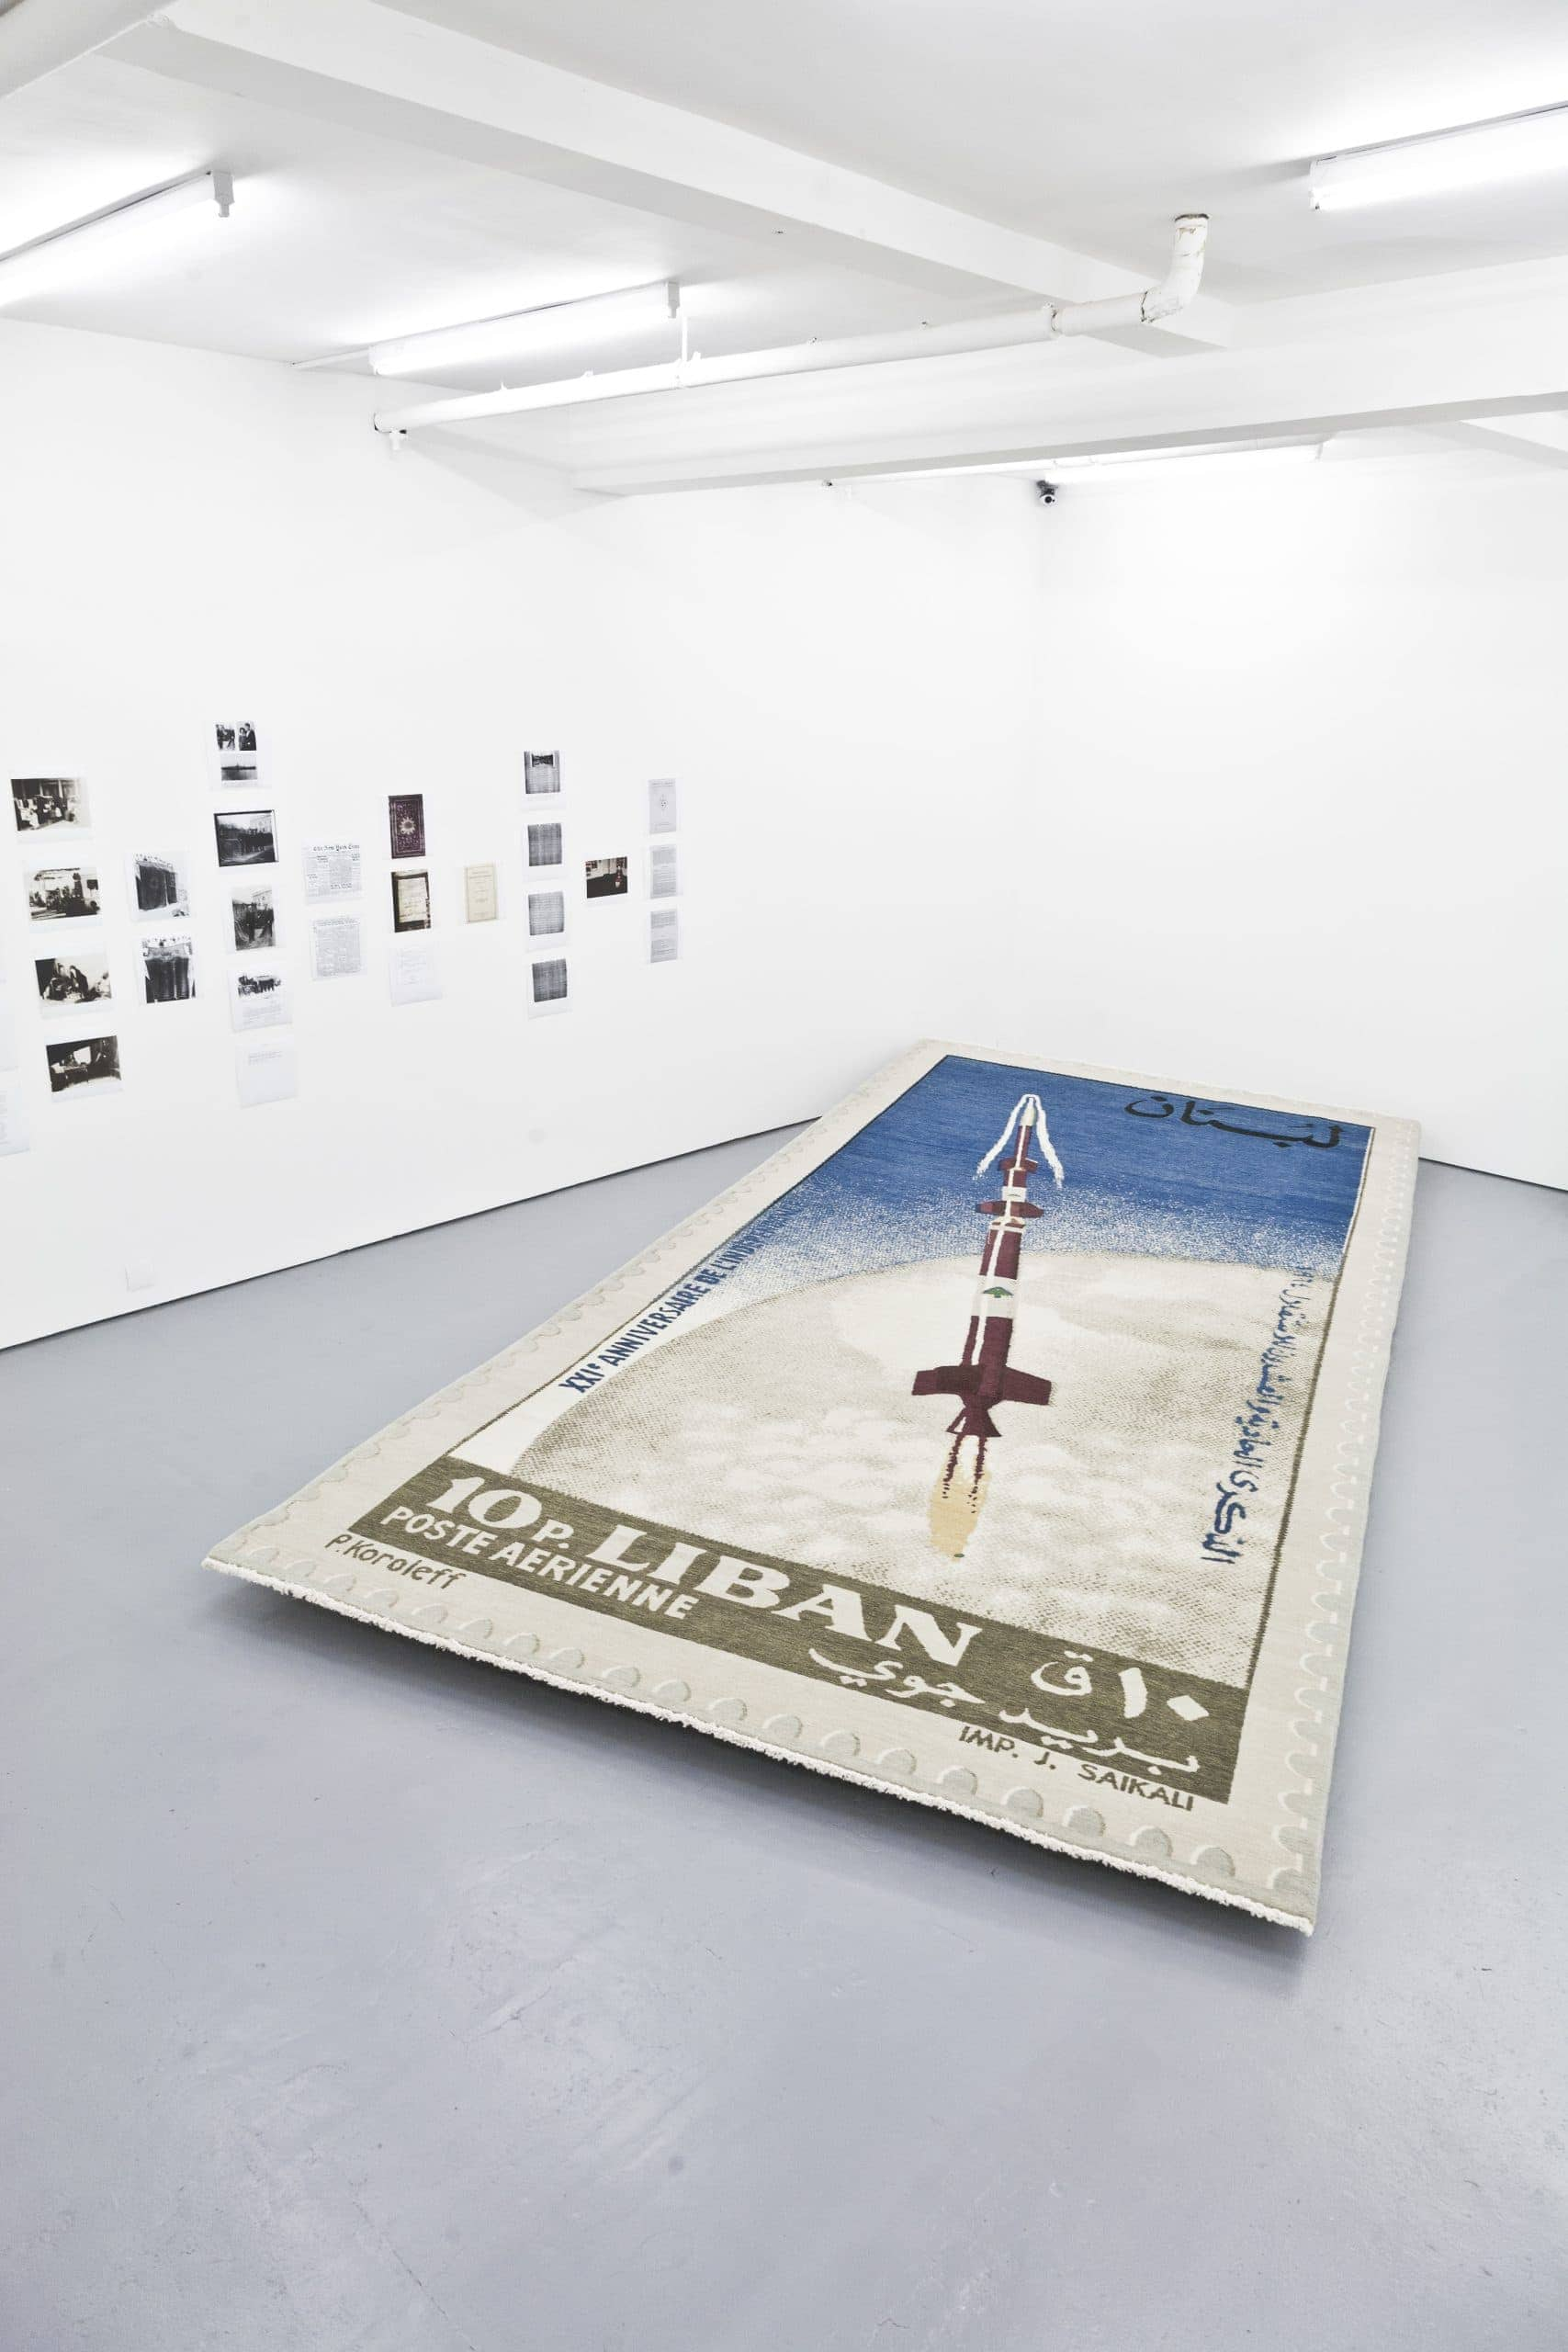 Joana Hadjithomas and Khalil Joreige, The Lebanese Rocket Society: A Carpet, 2012